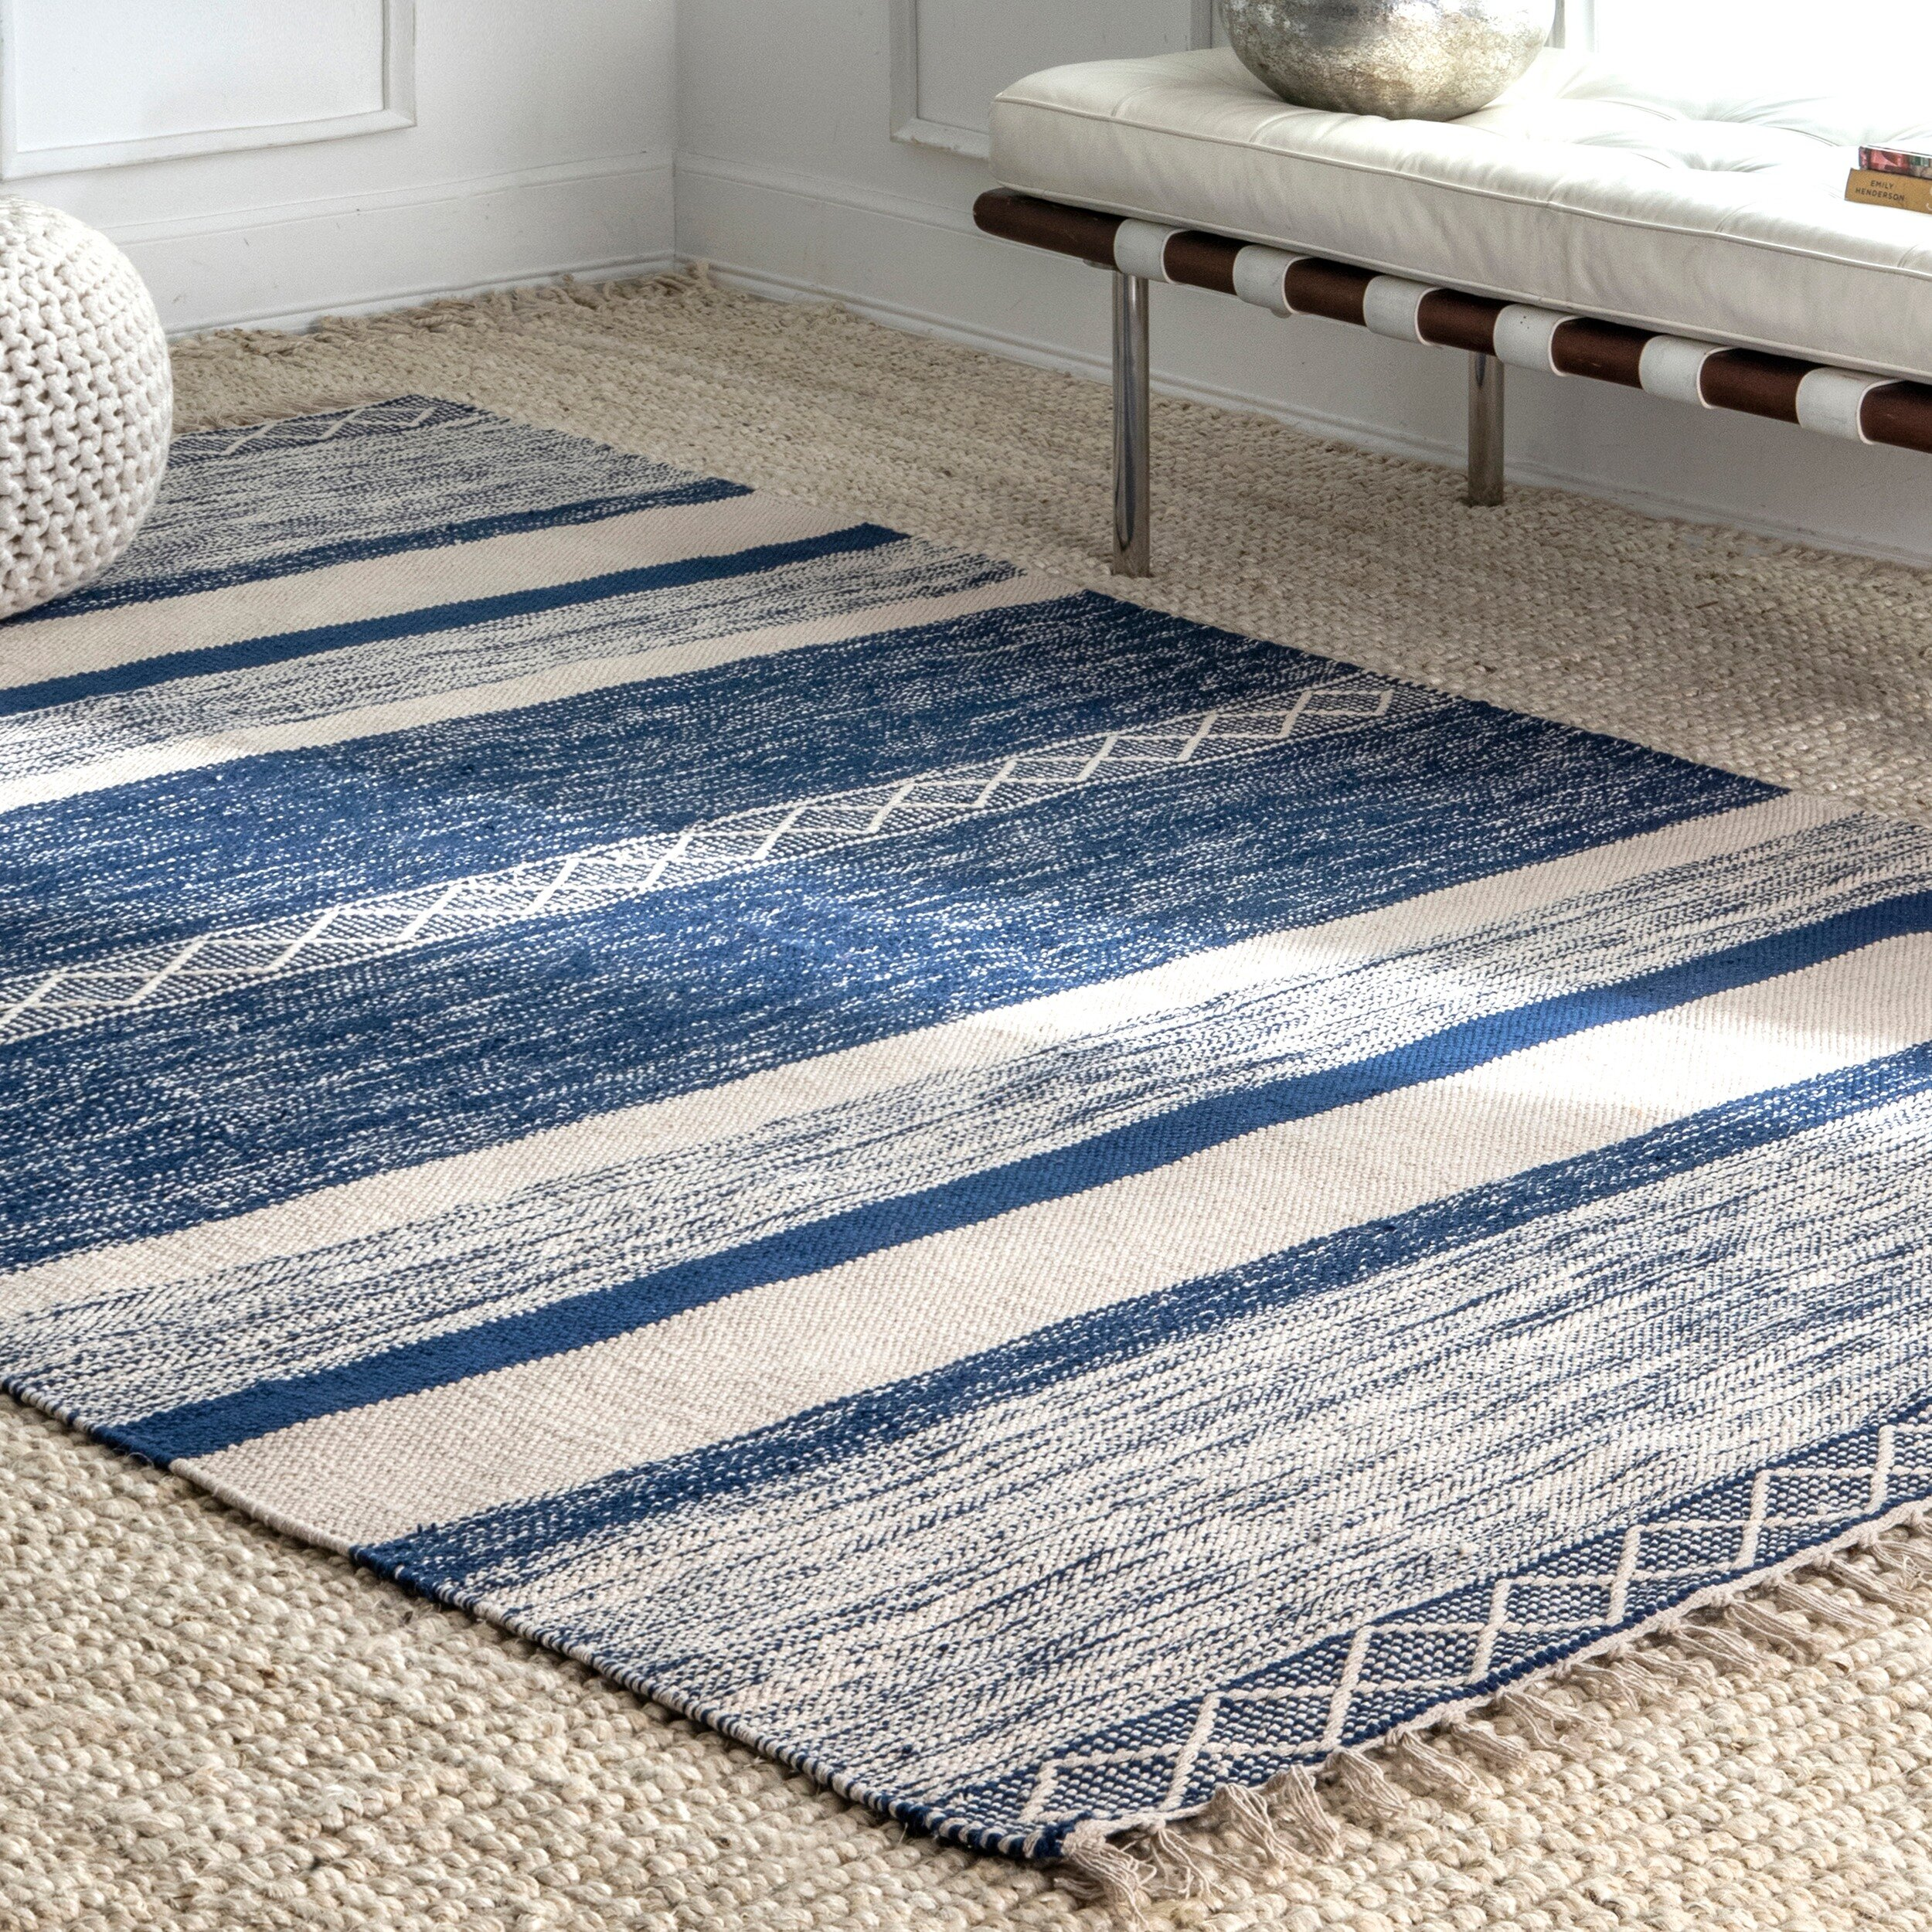 Loflandstriped Hand Knotted Blue Area Rug Reviews Birch Lane